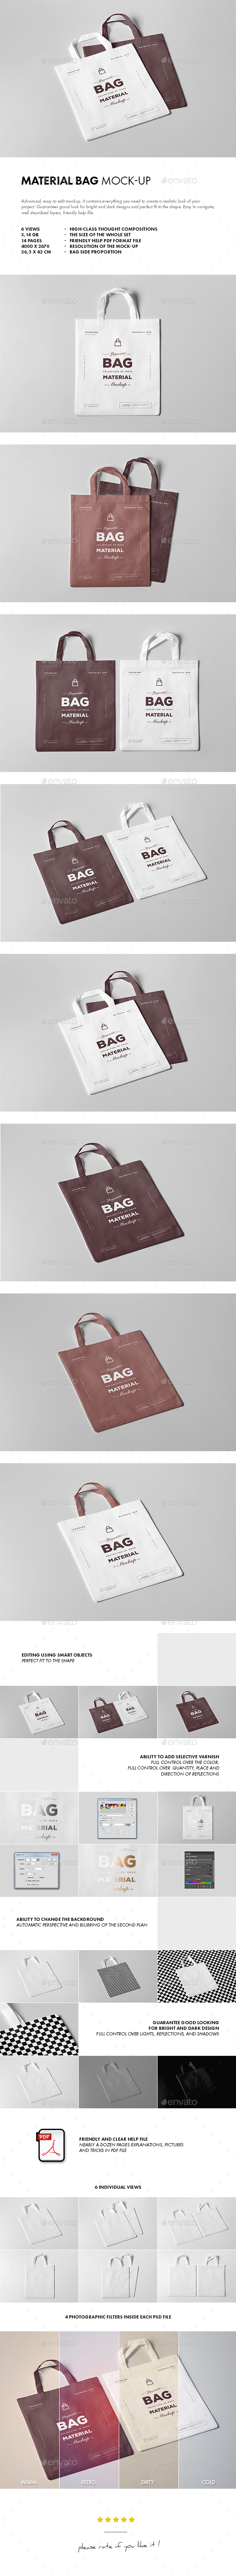 GraphicRiver Material Bag Mock-up 20403953